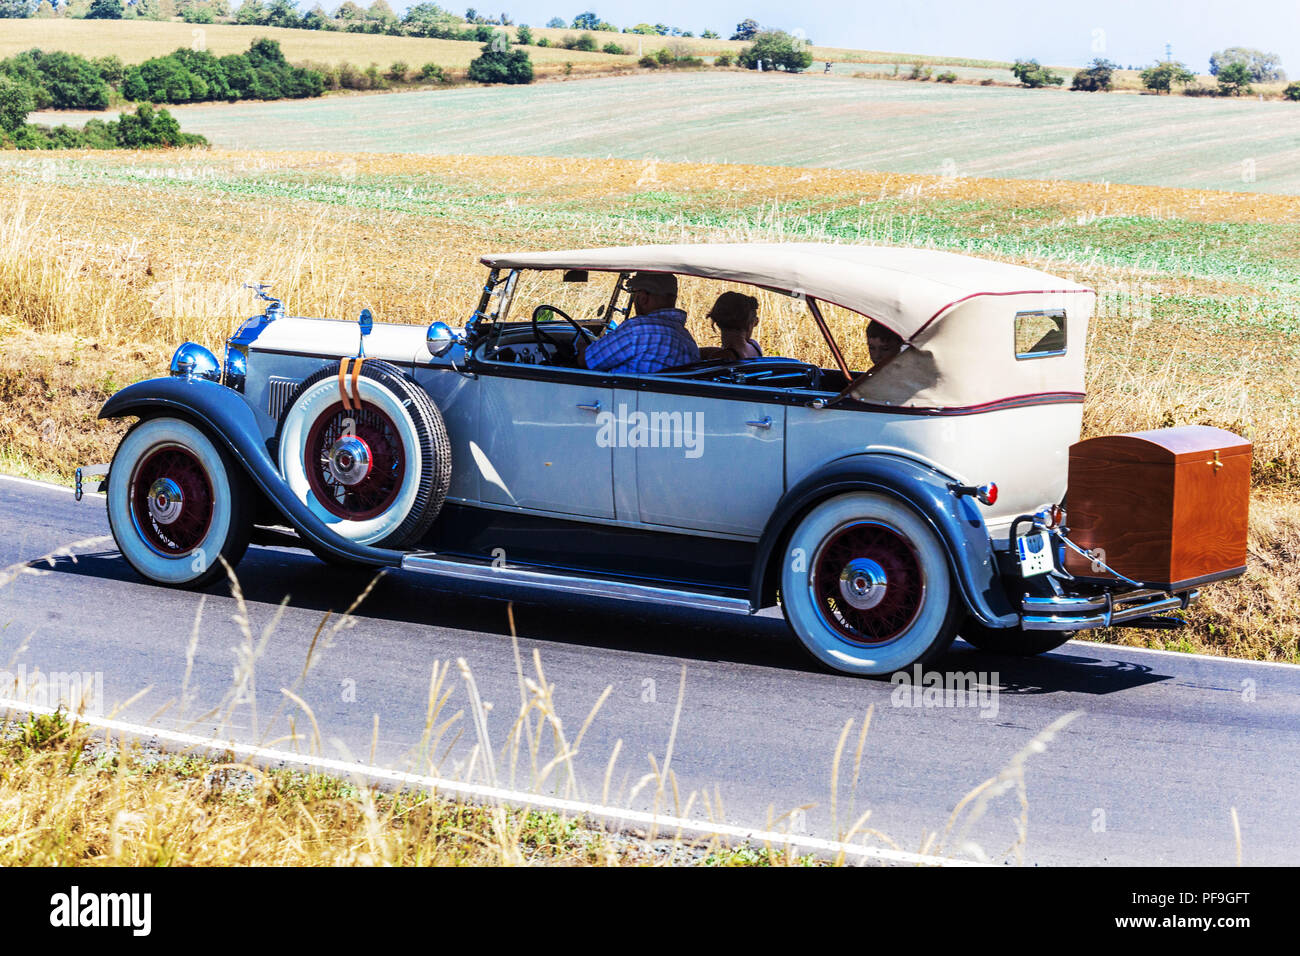 Packard Deluxe Eight(1931), Vintage car run on a rural road, Vintage Car Czech Republic - Stock Image